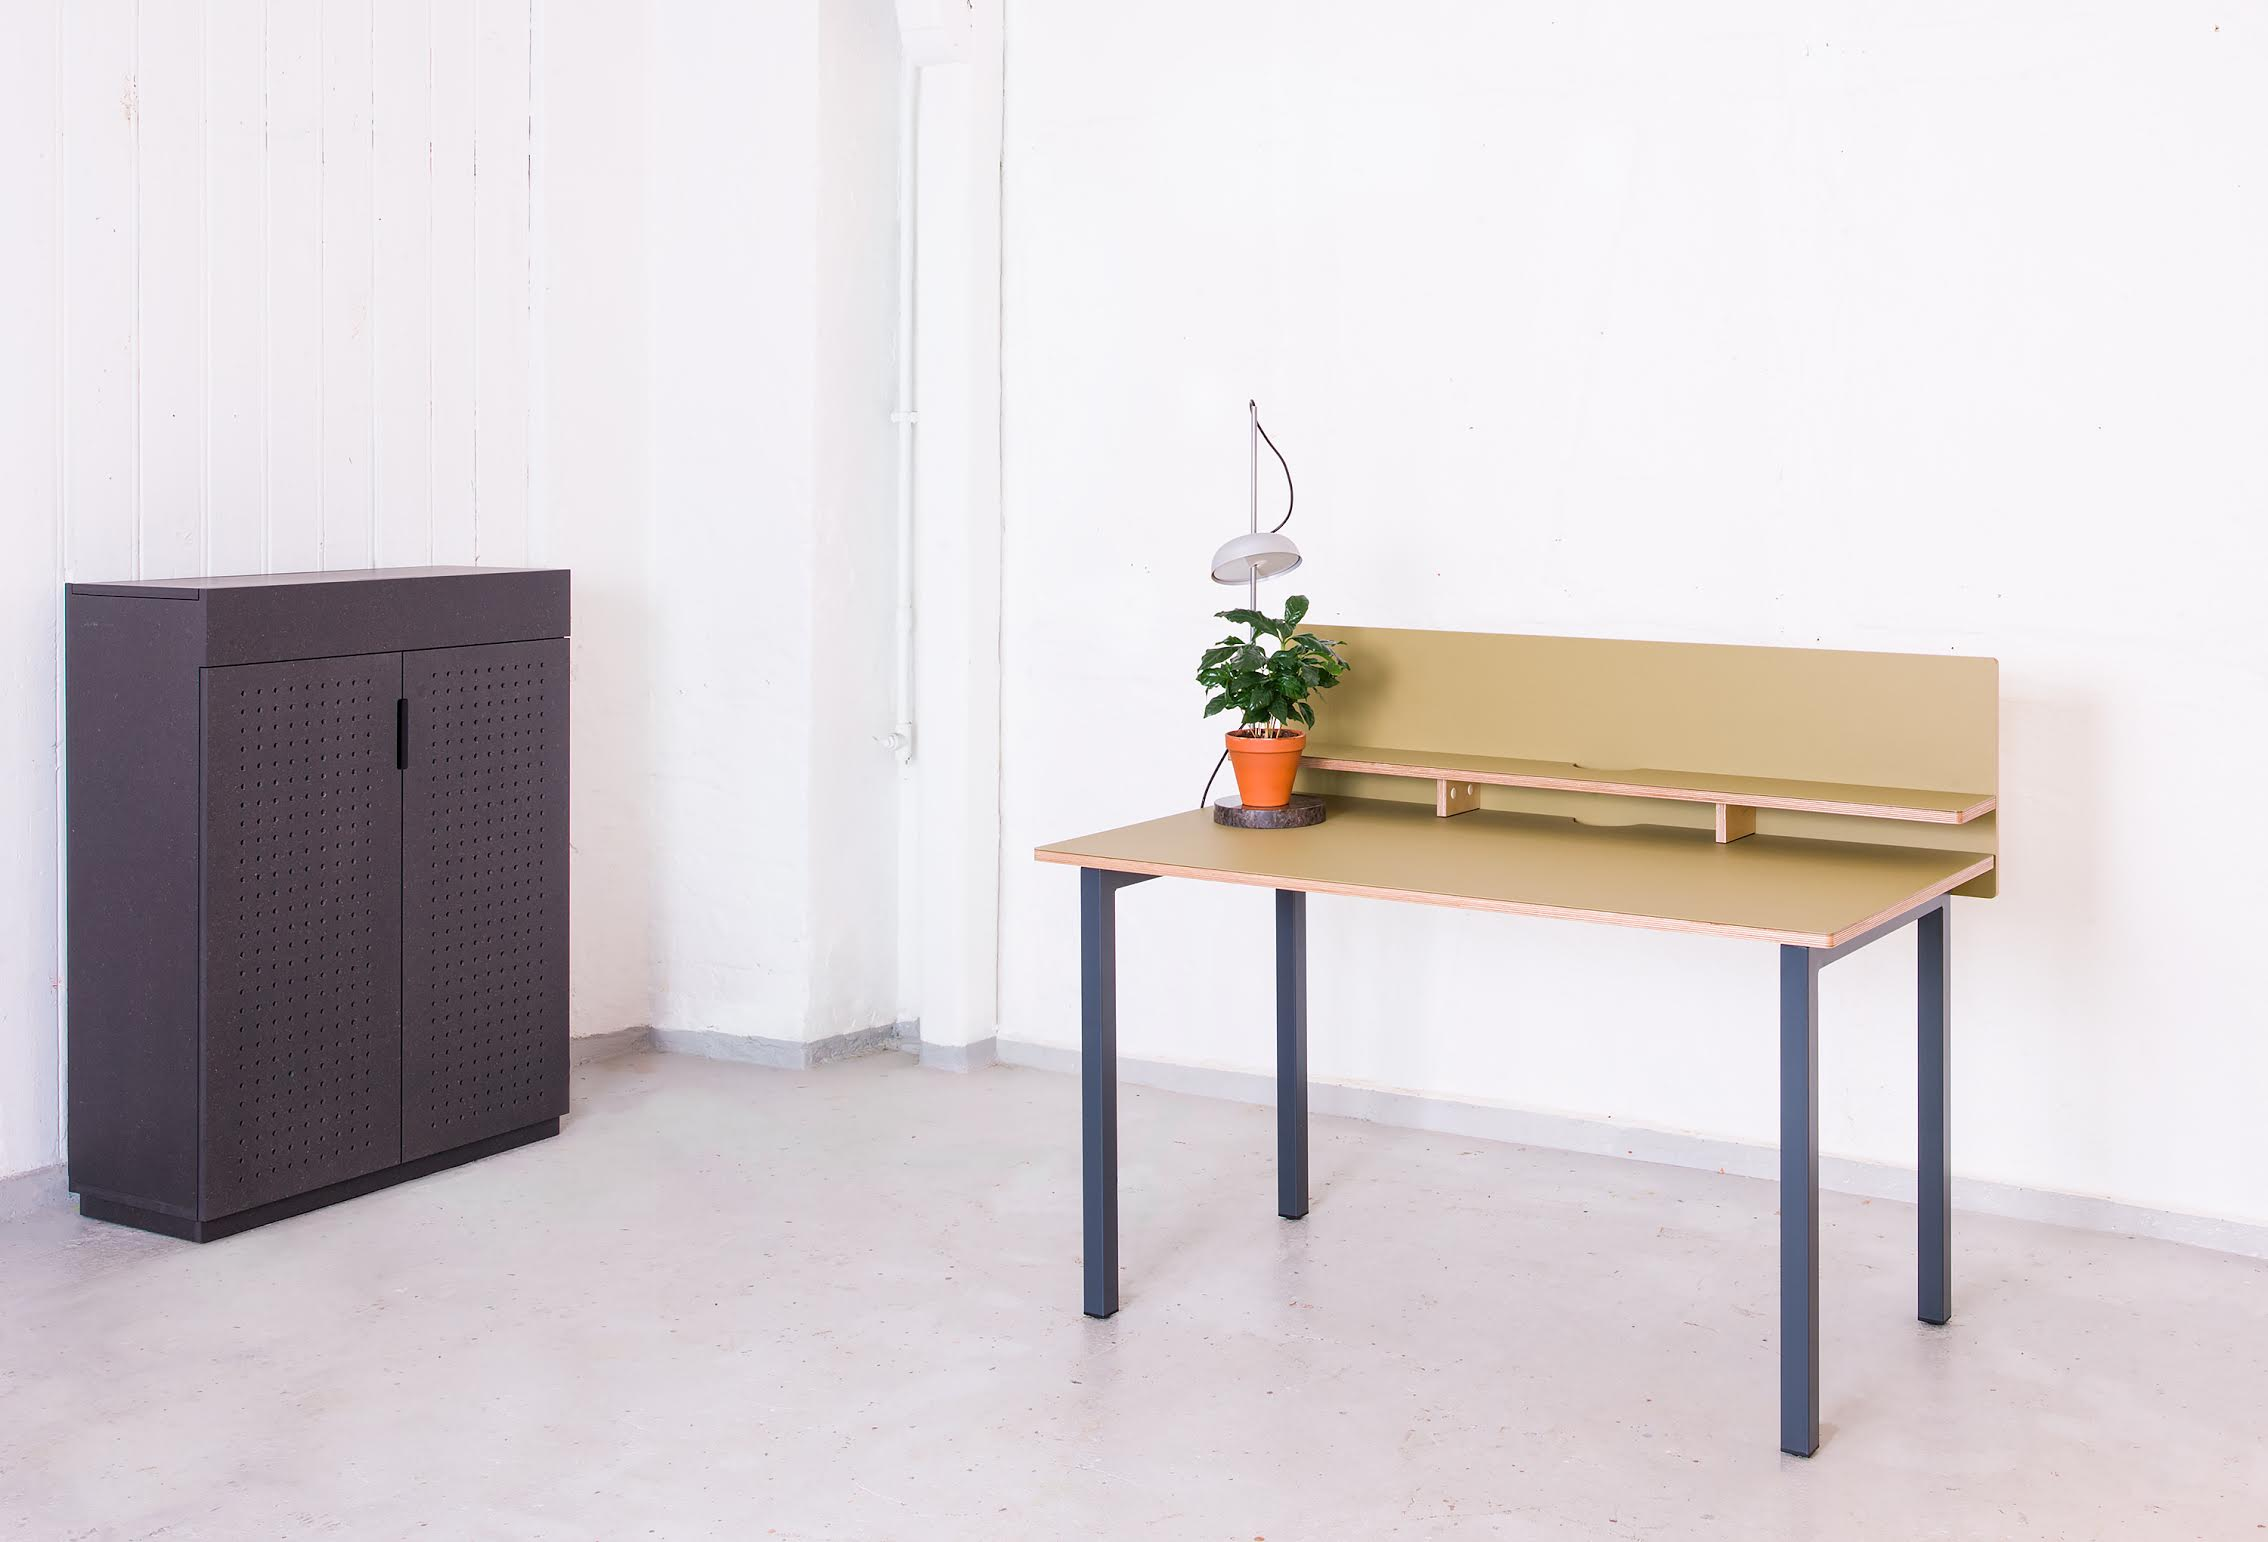 On the picture is a custom cabinet in solid anthracite Valchromat - with perforated fronts for sound absorption, designed by Norwegian interior architect Ellen Ledsten - along with Hallgeir Homstvedt's UT desk and the KI light.